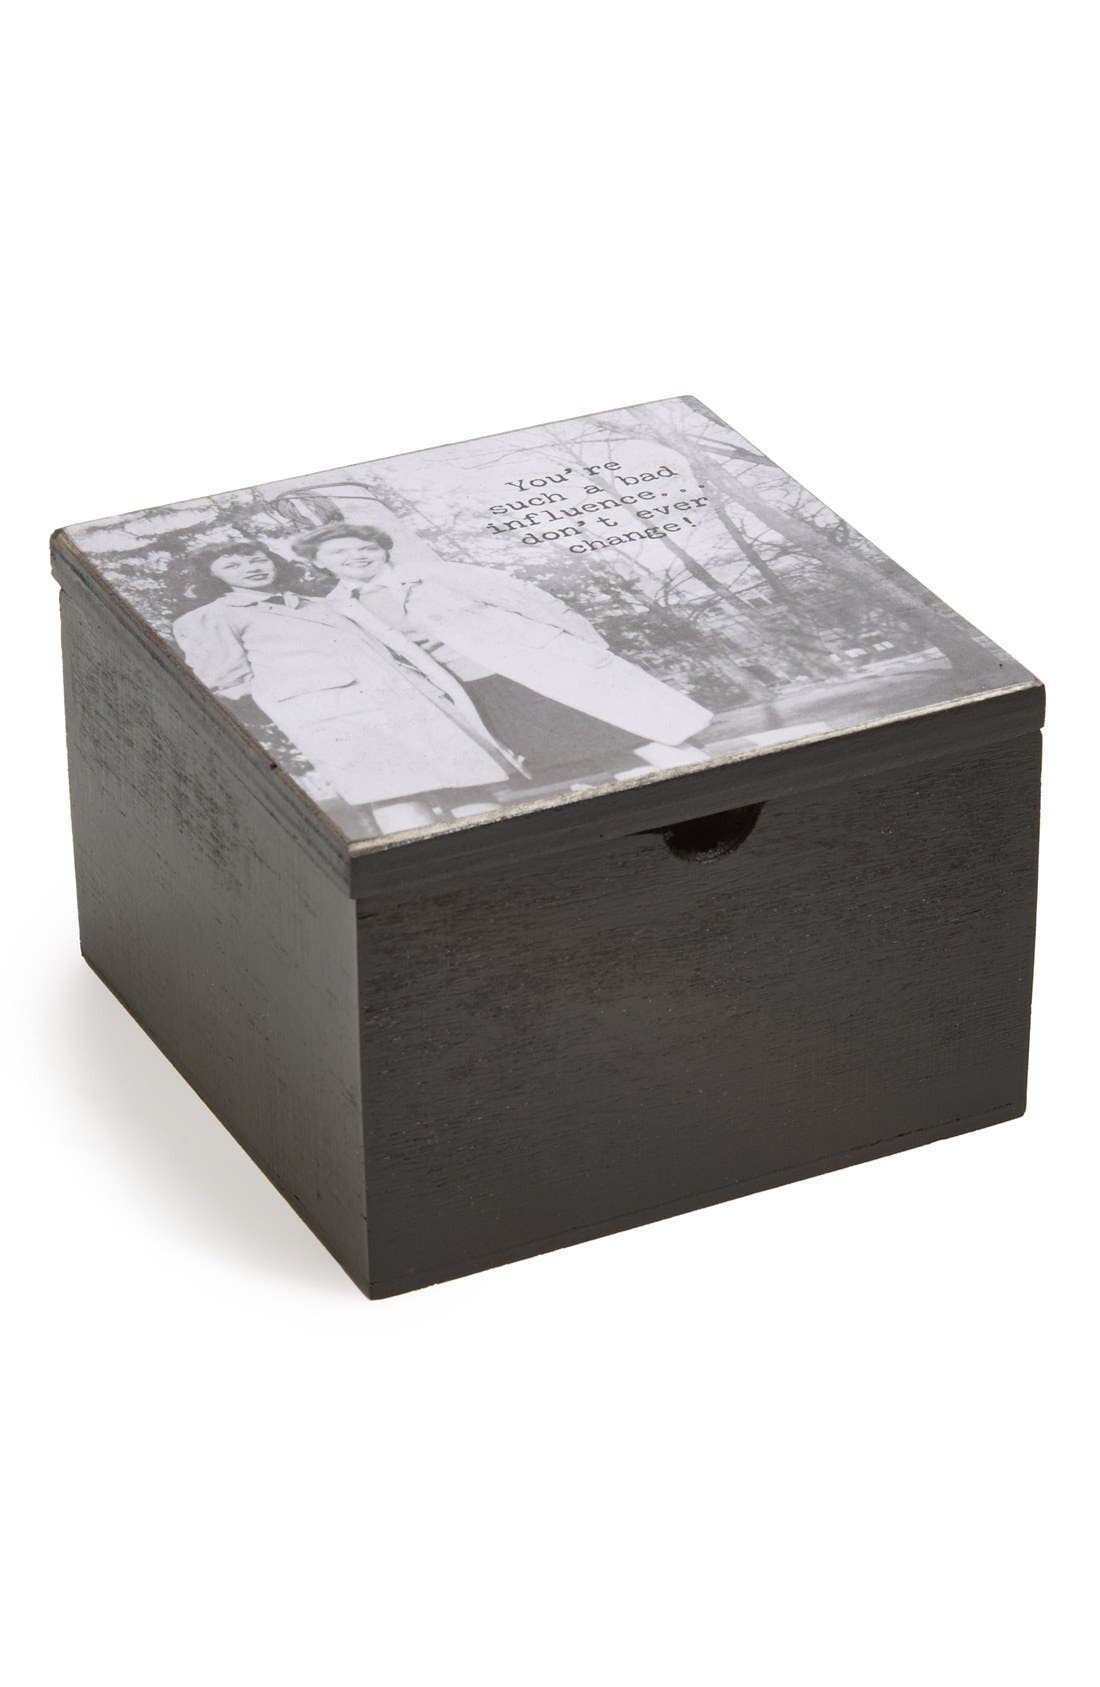 Alternate Image 2  - Trash Talk by Annie 'Don't Change' Wooden Decorative Box